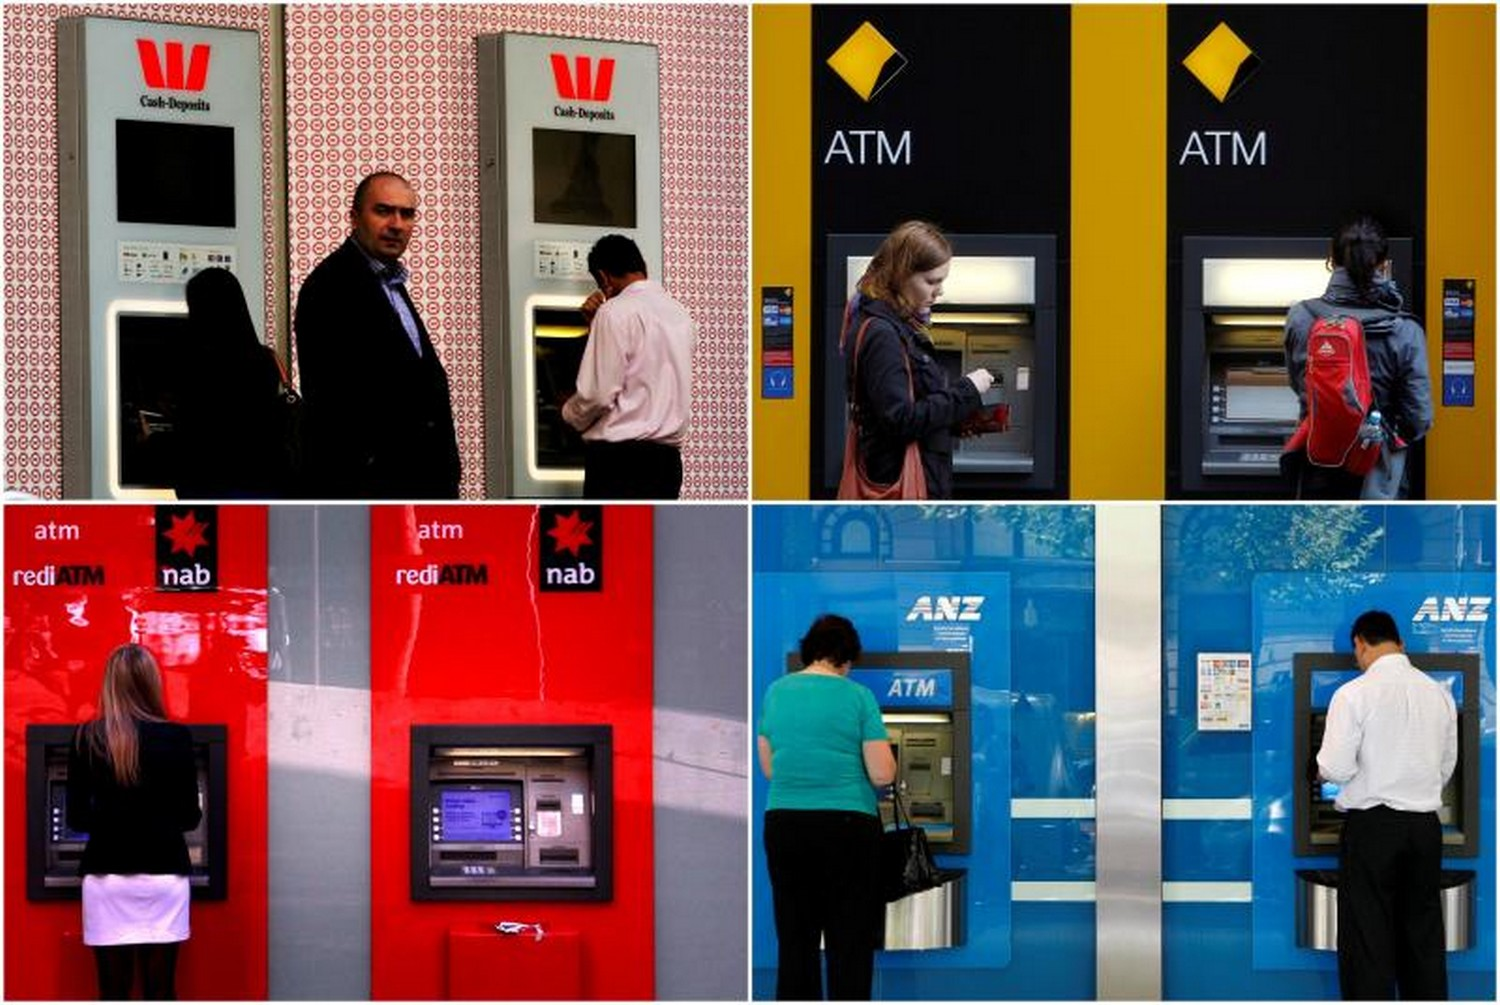 Customers using ATMs at Australia's